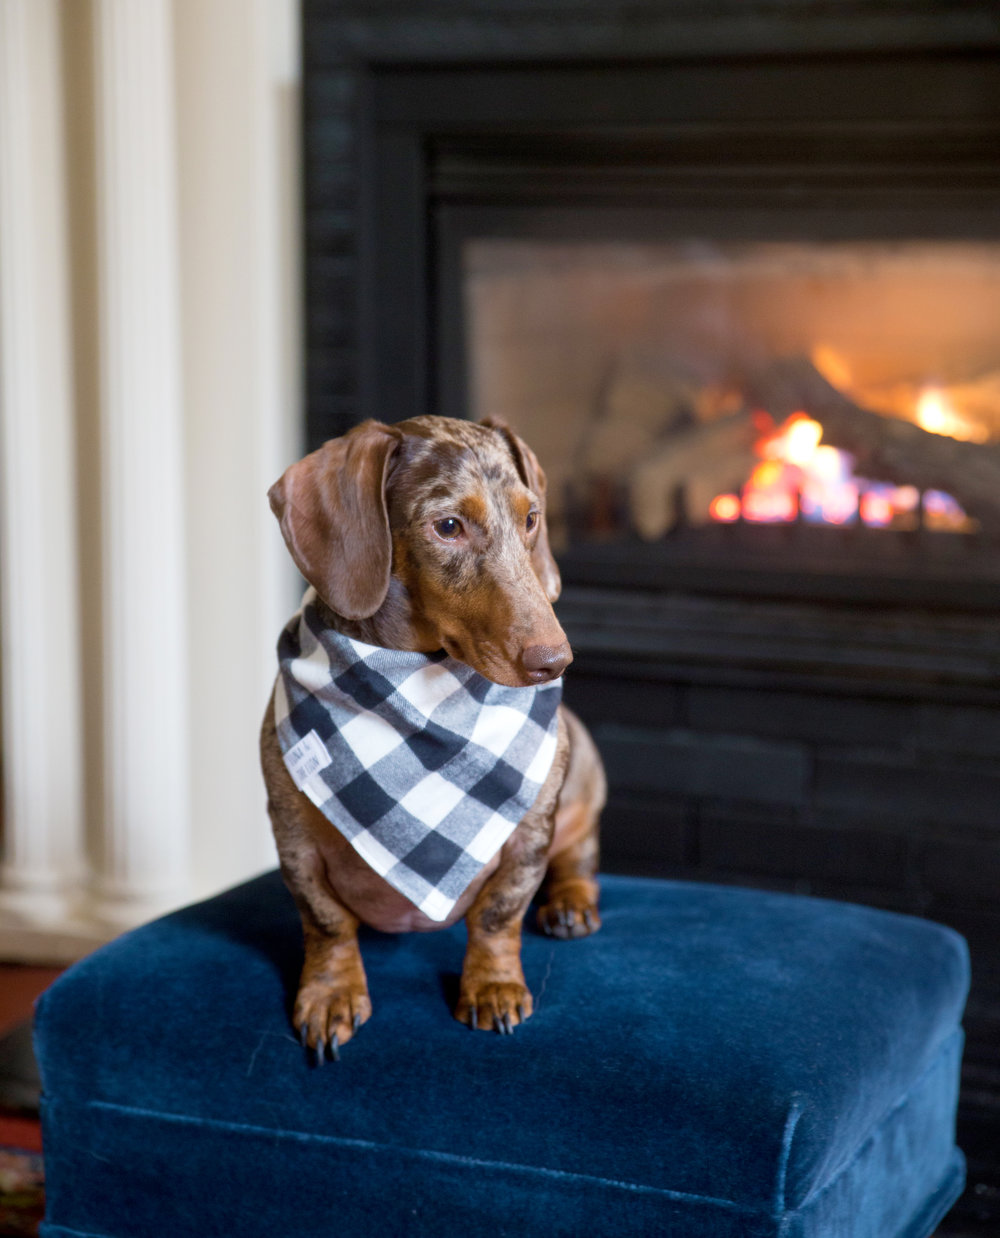 Dave loved our in-room fireplace at The Red Lion Inn